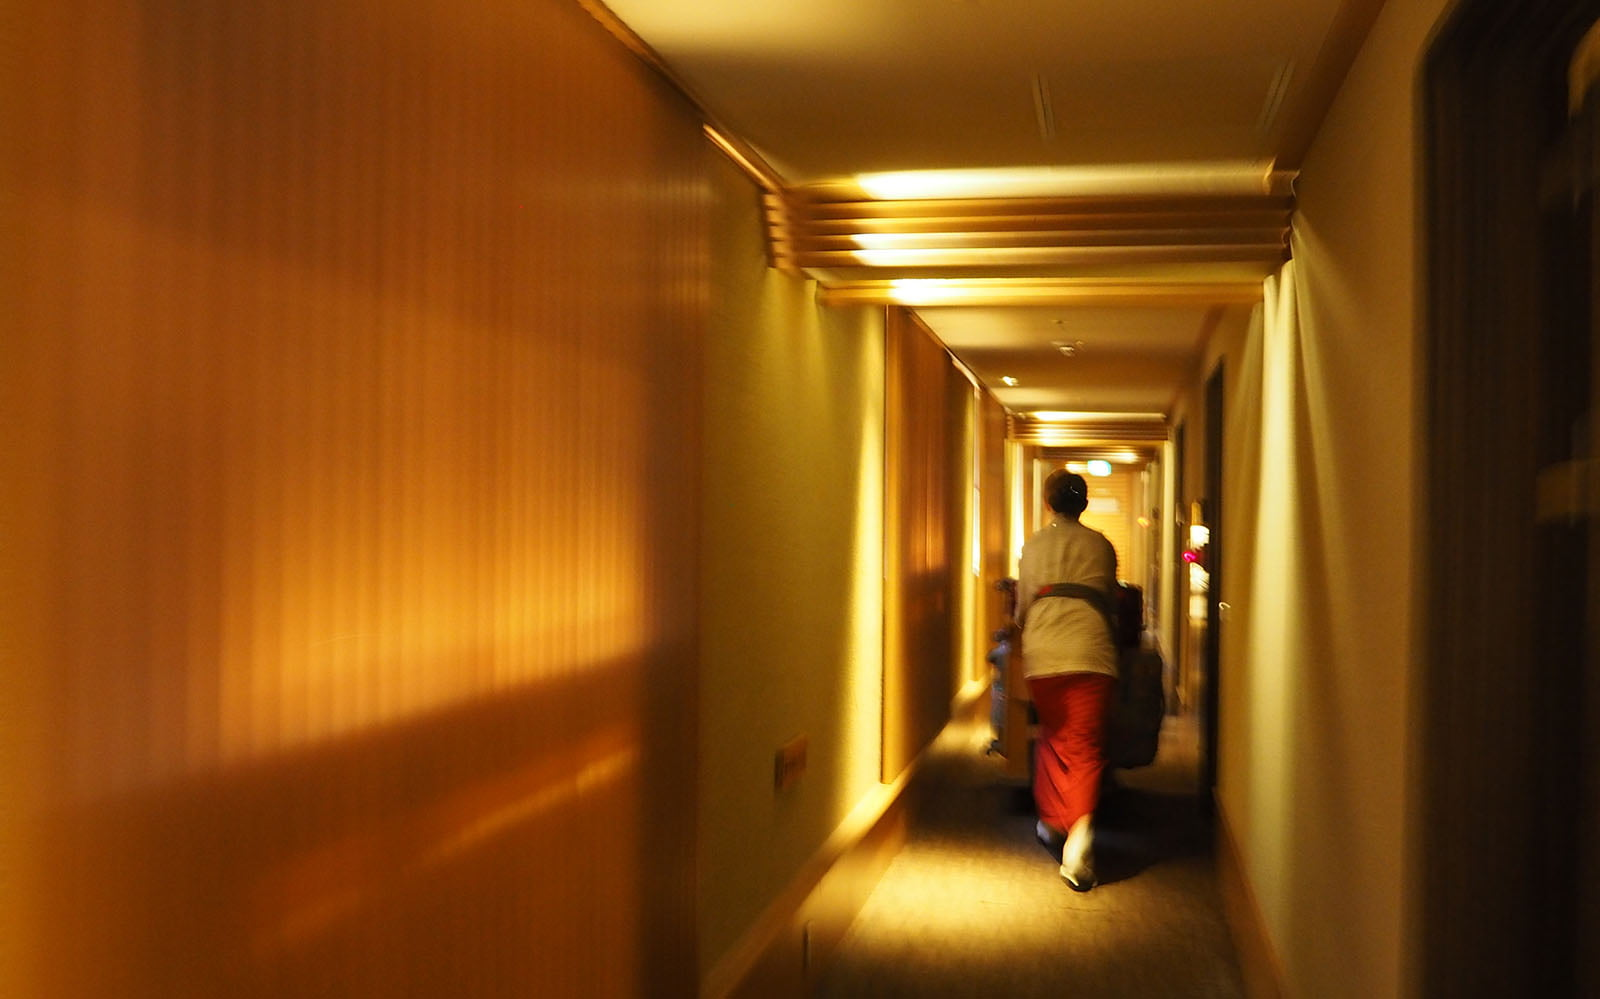 ryokan hotel corridor | Staying at Yumotokan Onsen Ryokan in Kyoto • The Petite Wanderess